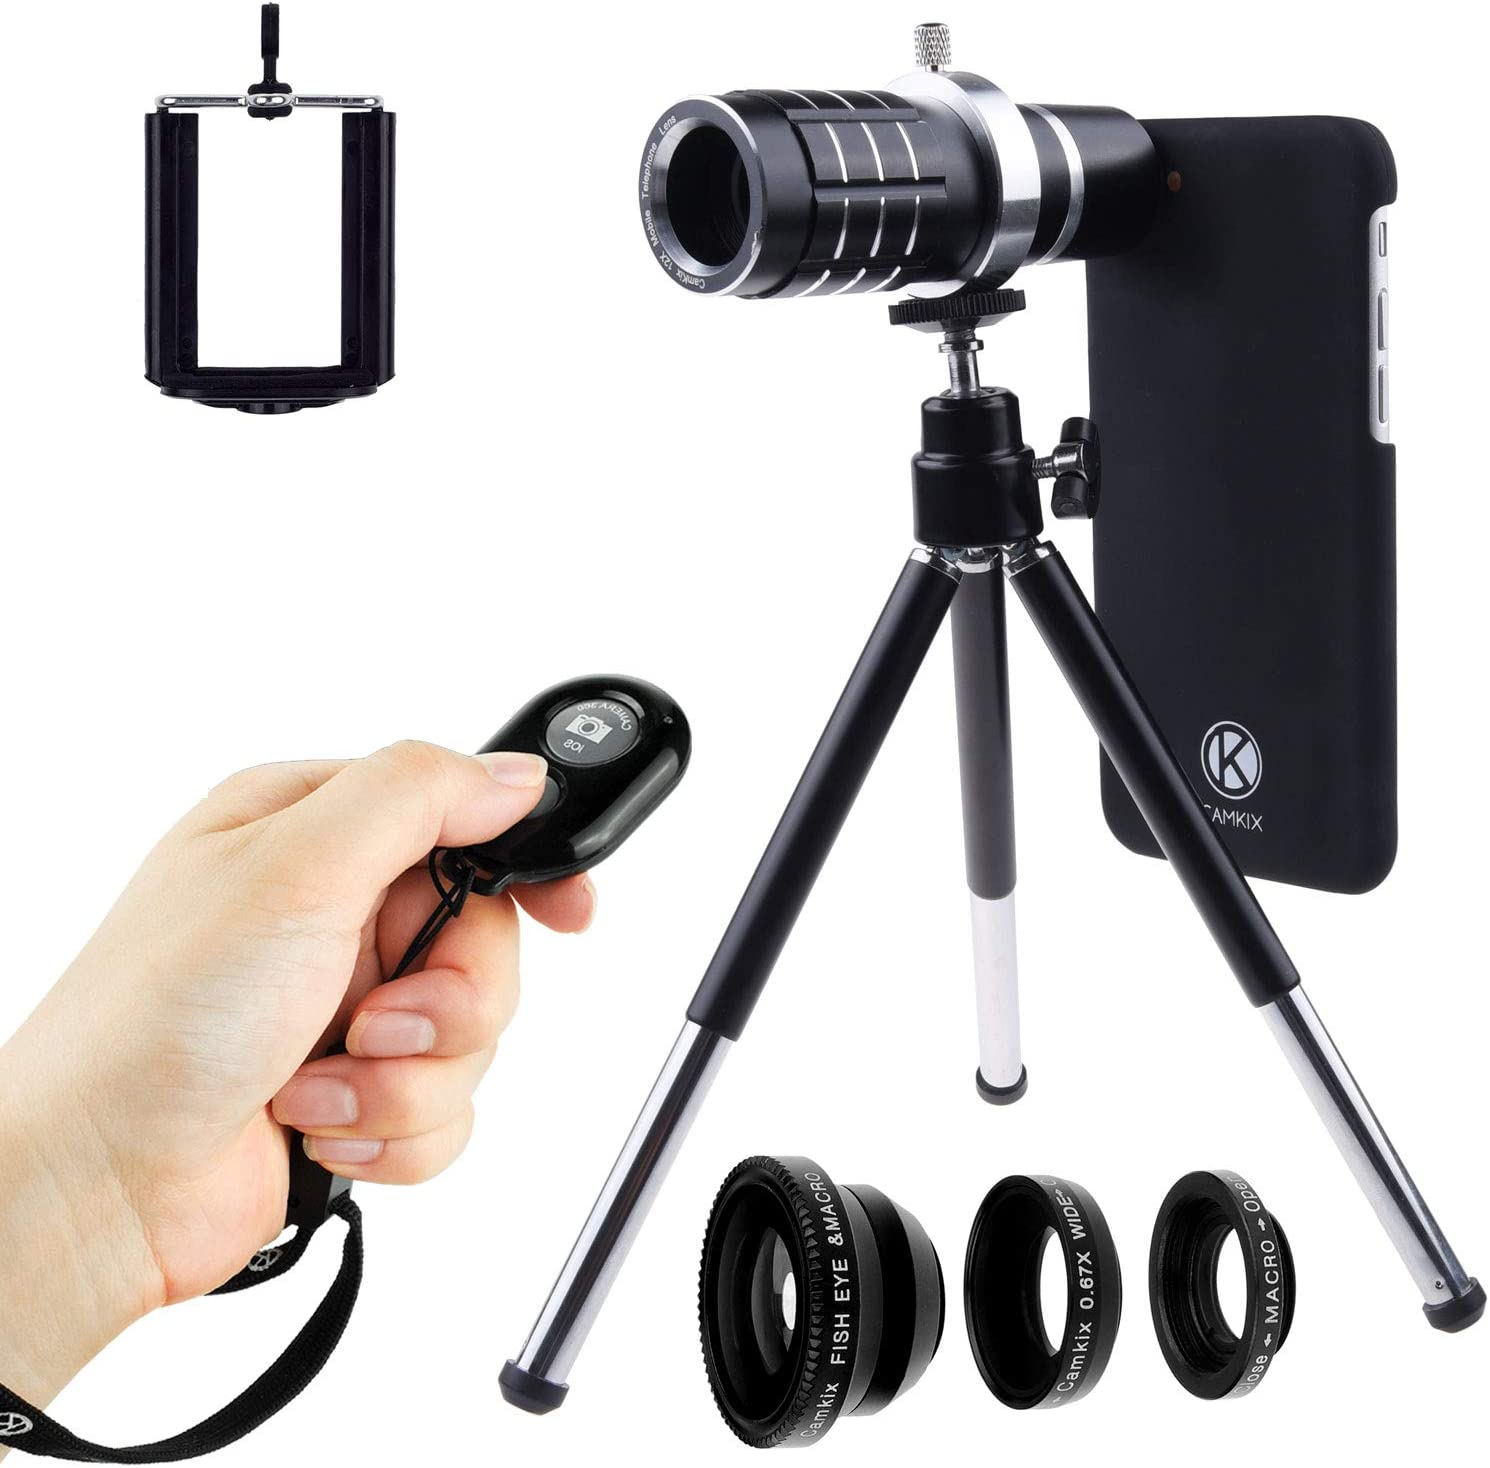 Amazon Com Camkix Lens And Bluetooth Shutter Remote Kit Compatible With Apple Iphone 8 And Iphone 7 Includes Bluetooth Remote 12x Telephoto Fisheye Macro Wide Angle Lens Tripod Holder Lens Ring Case